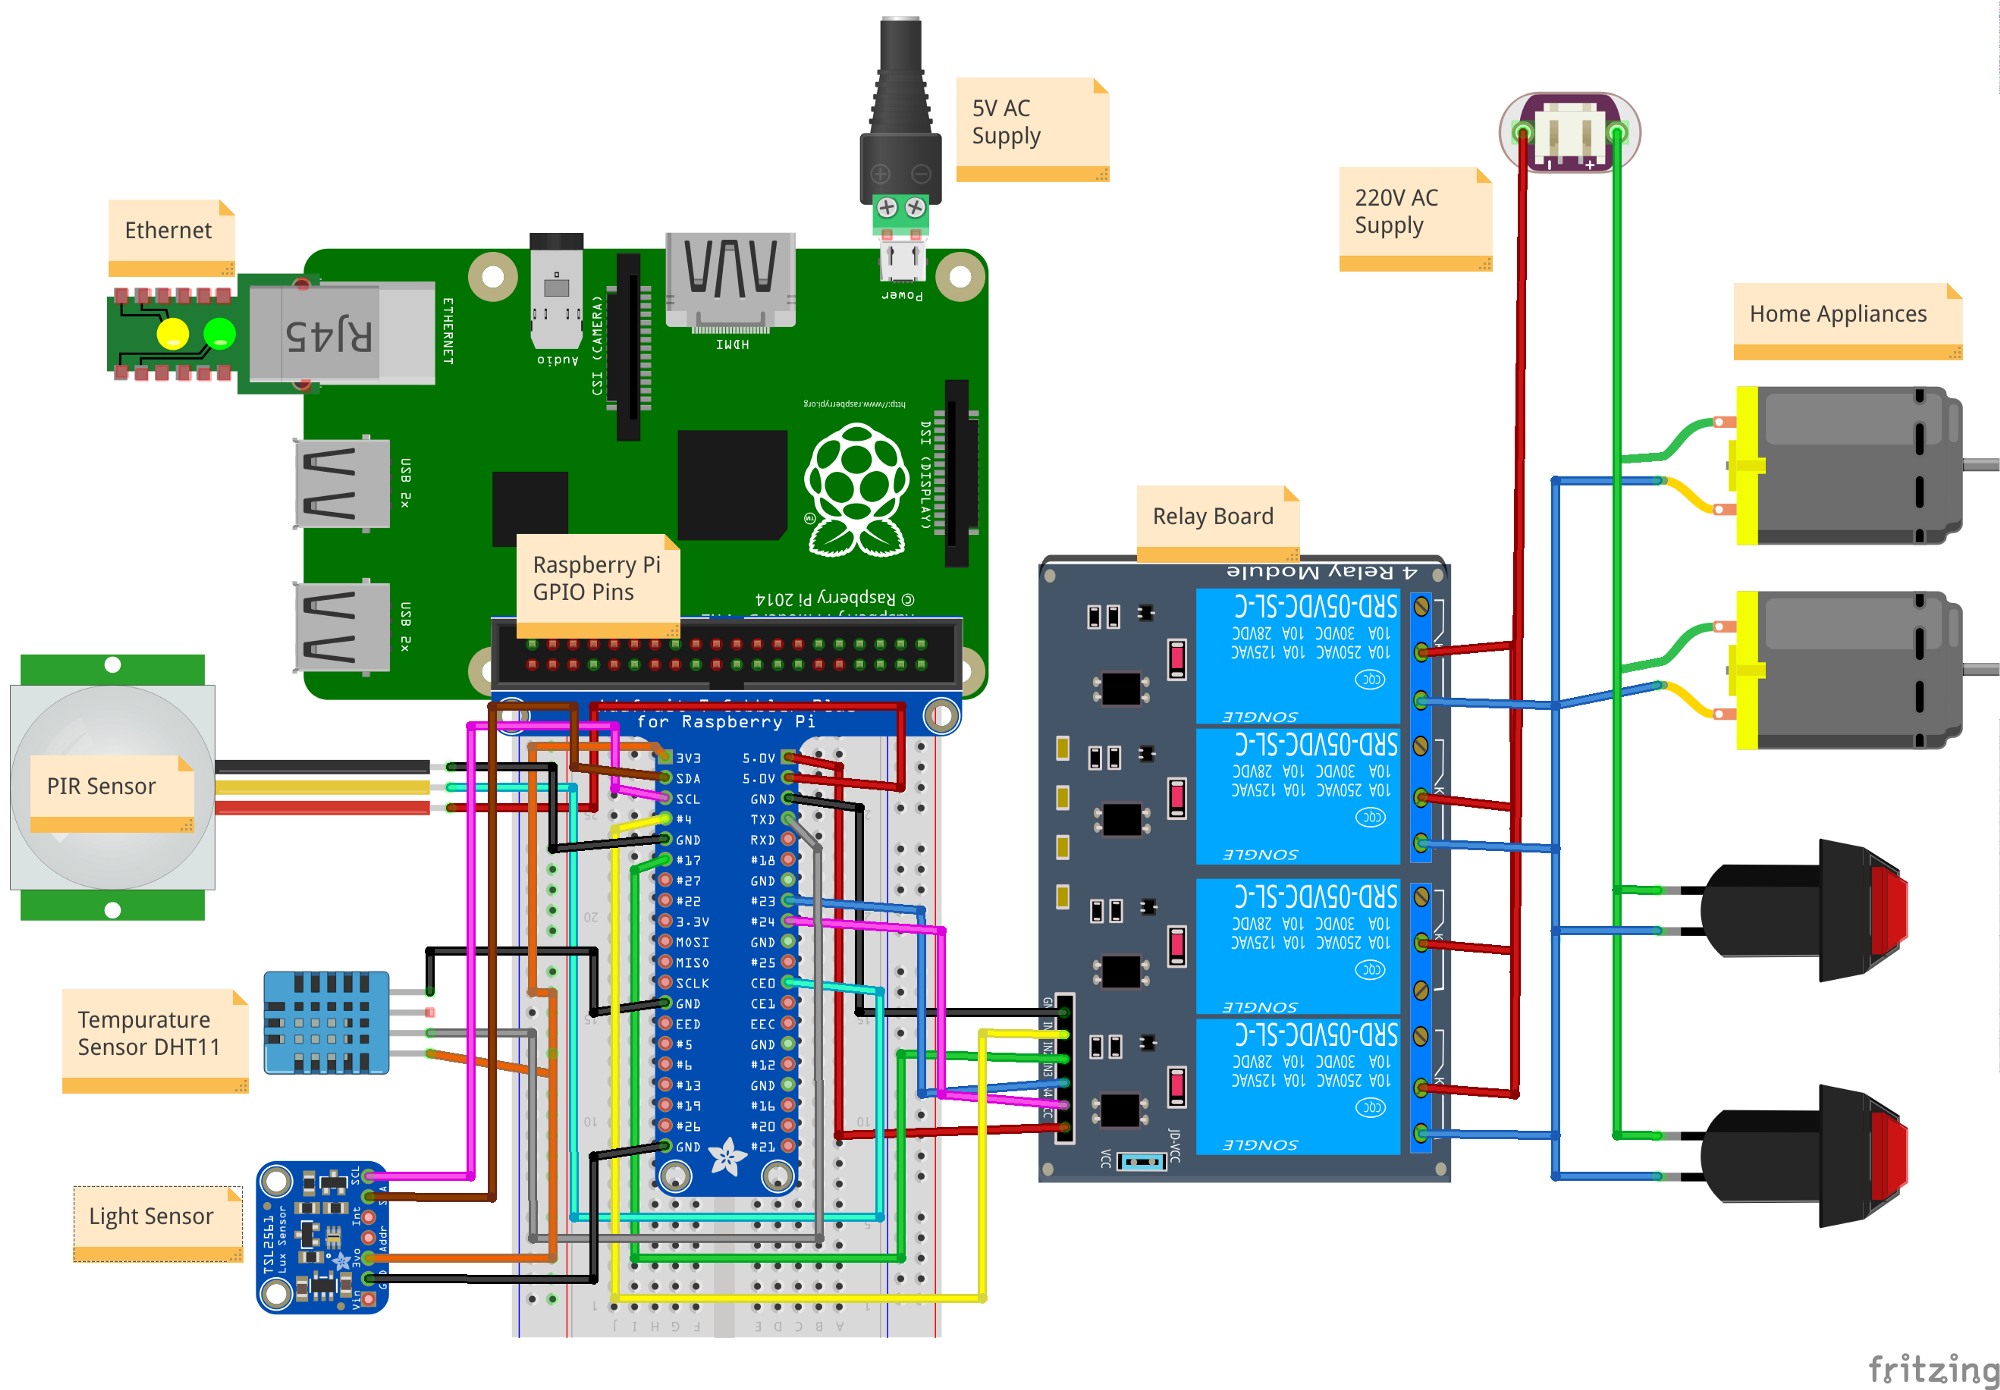 Internet Of Things Raspberry Pi Home Automation System Based On Iot You Need Your House Electrical Plan For Implementation Now Lets Connect To Hardware Devices And After That We Will Write Code In Os Control